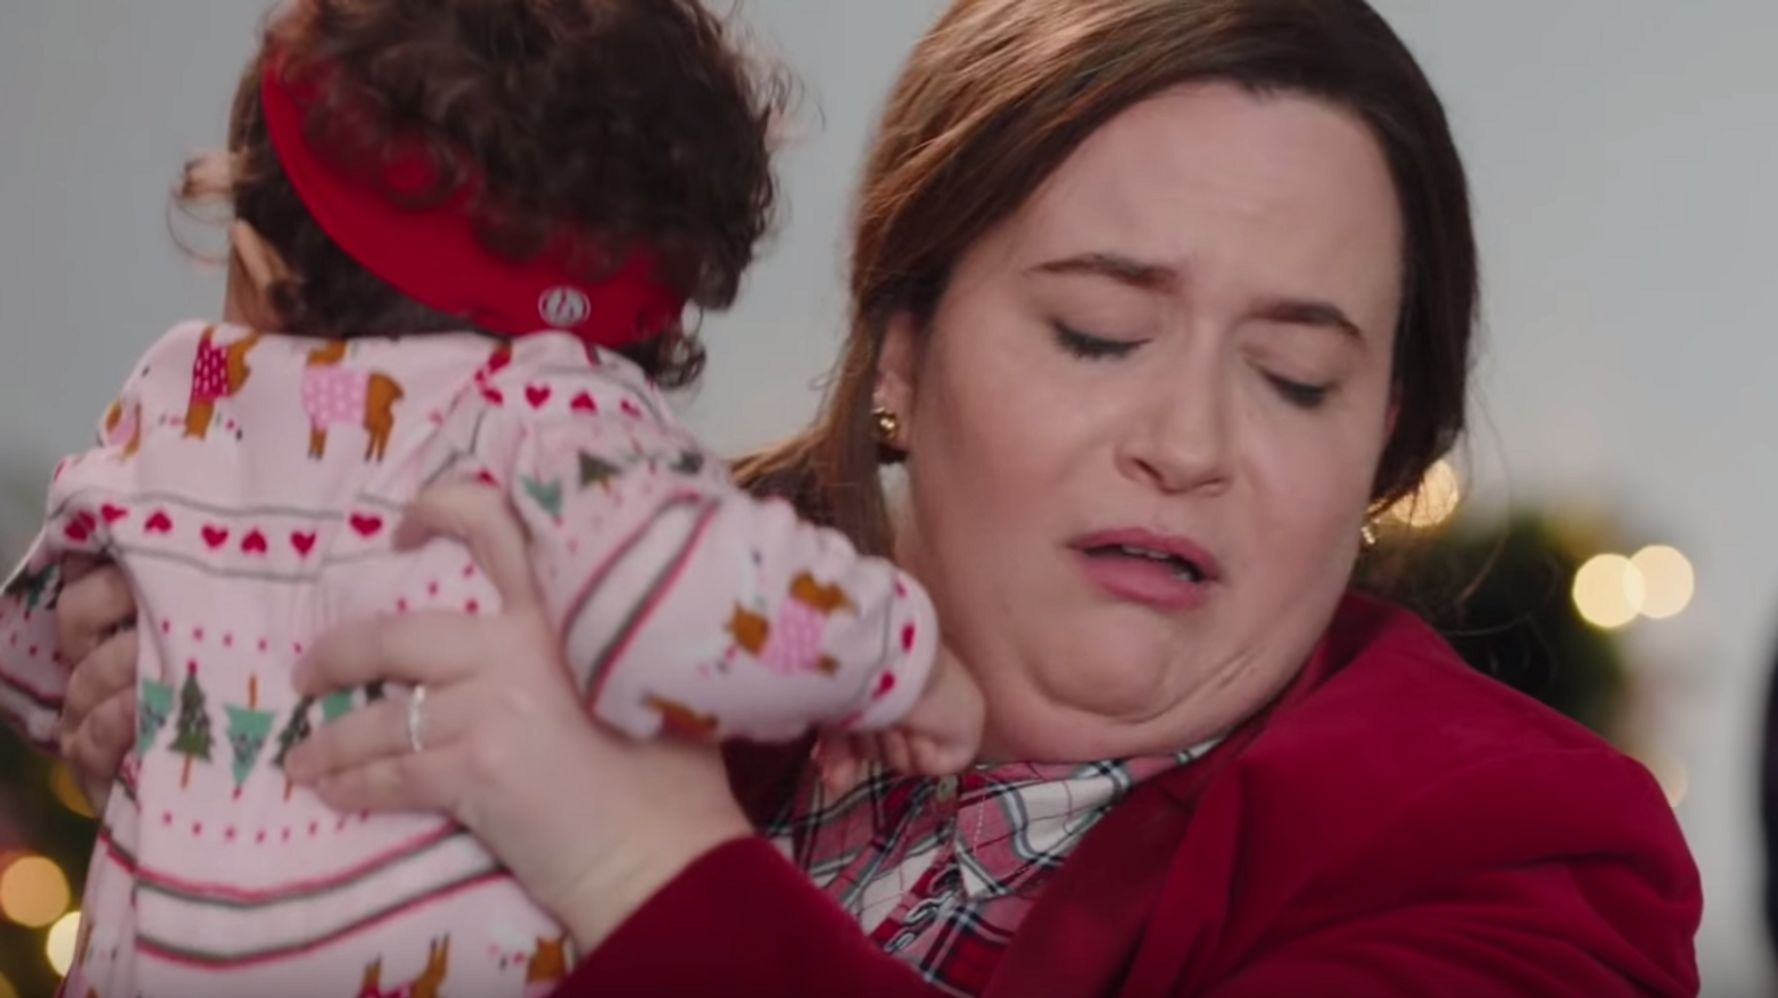 Parents Are Seriously Relating To This 'Children's Clothing Ad' From 'SNL'